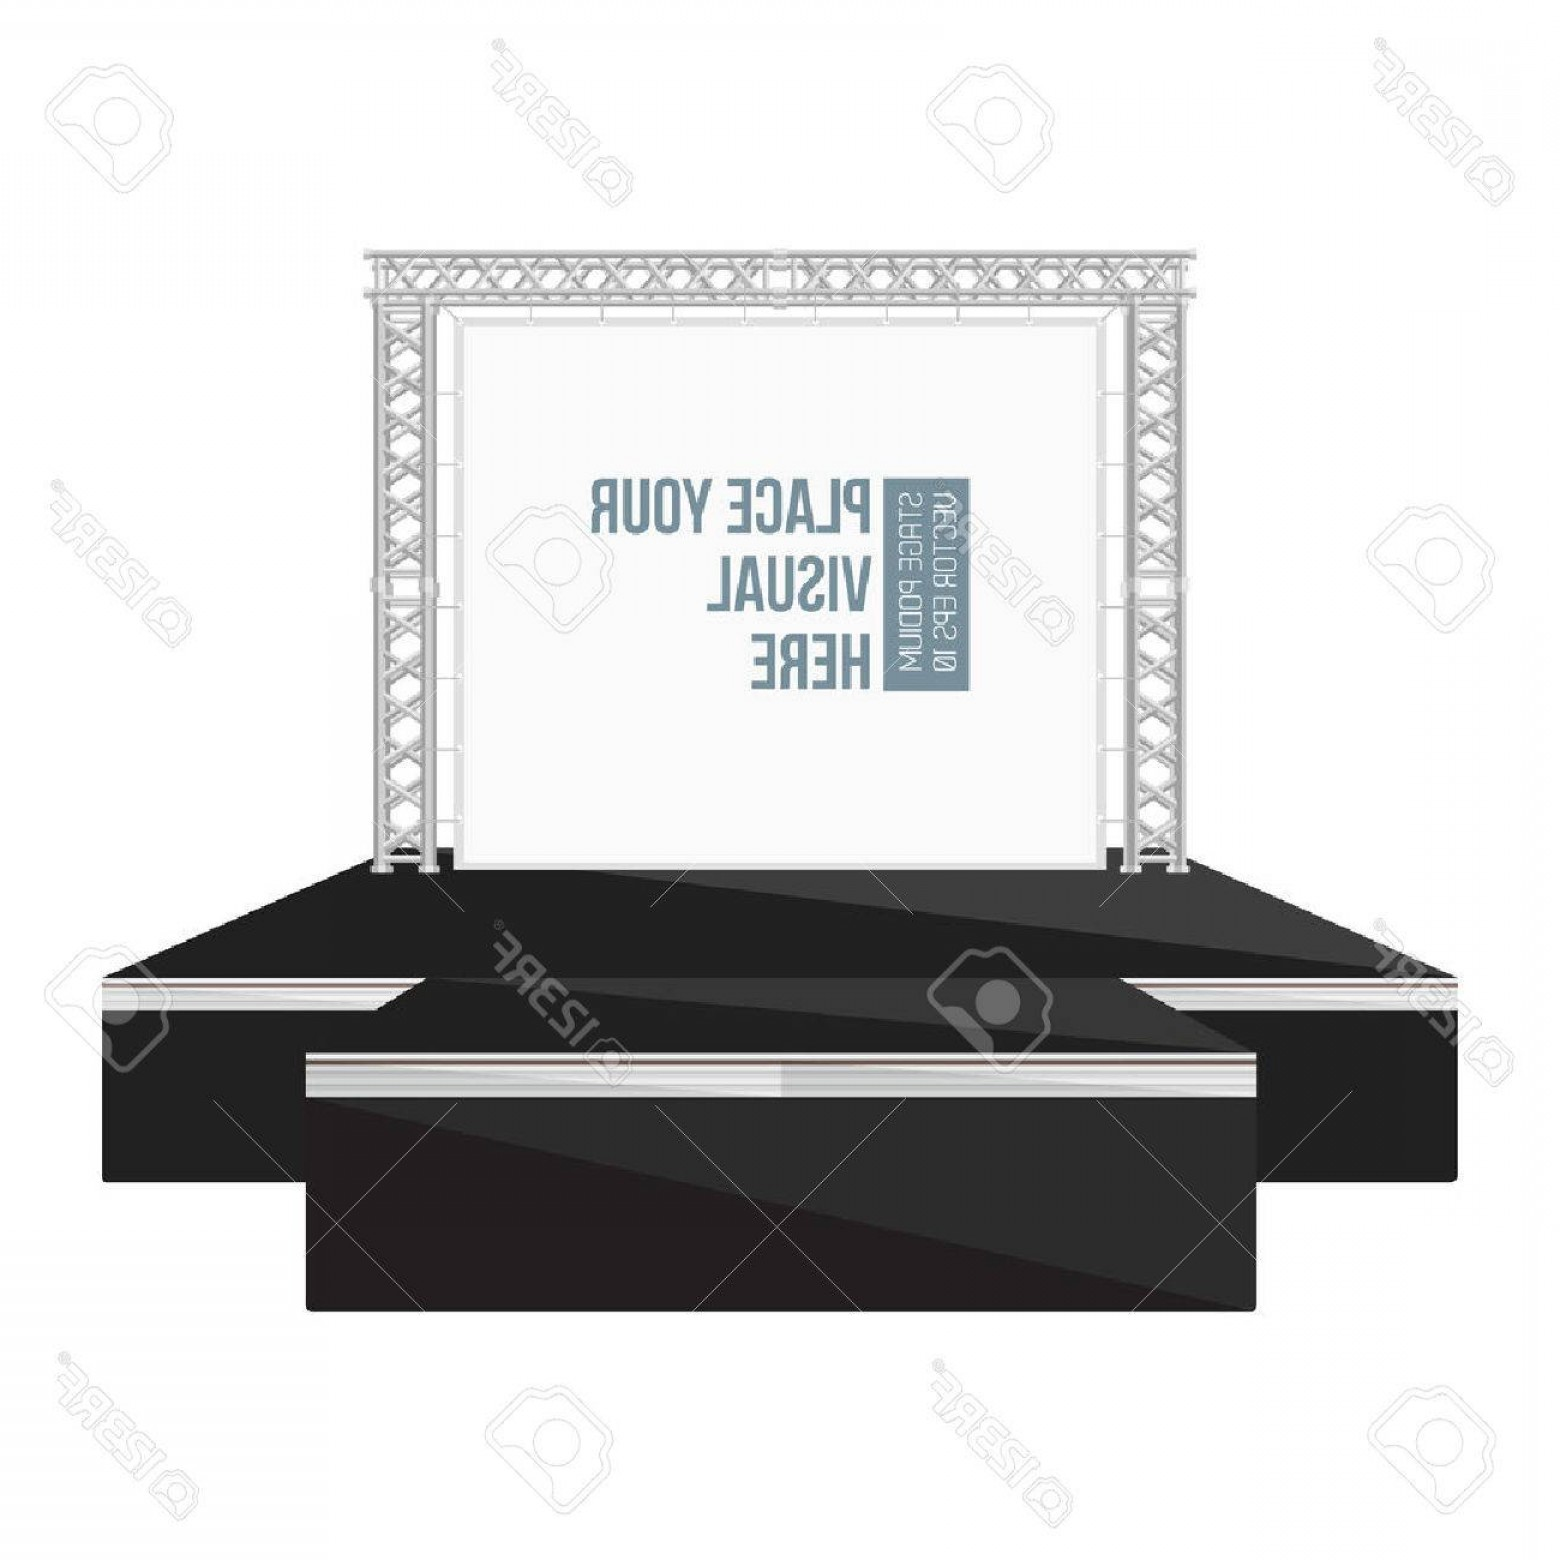 Aluminum Truss Design Vector: Photostock Vector Vector Black Color Flat Style High Podium Stage With Banner On Metal Truss